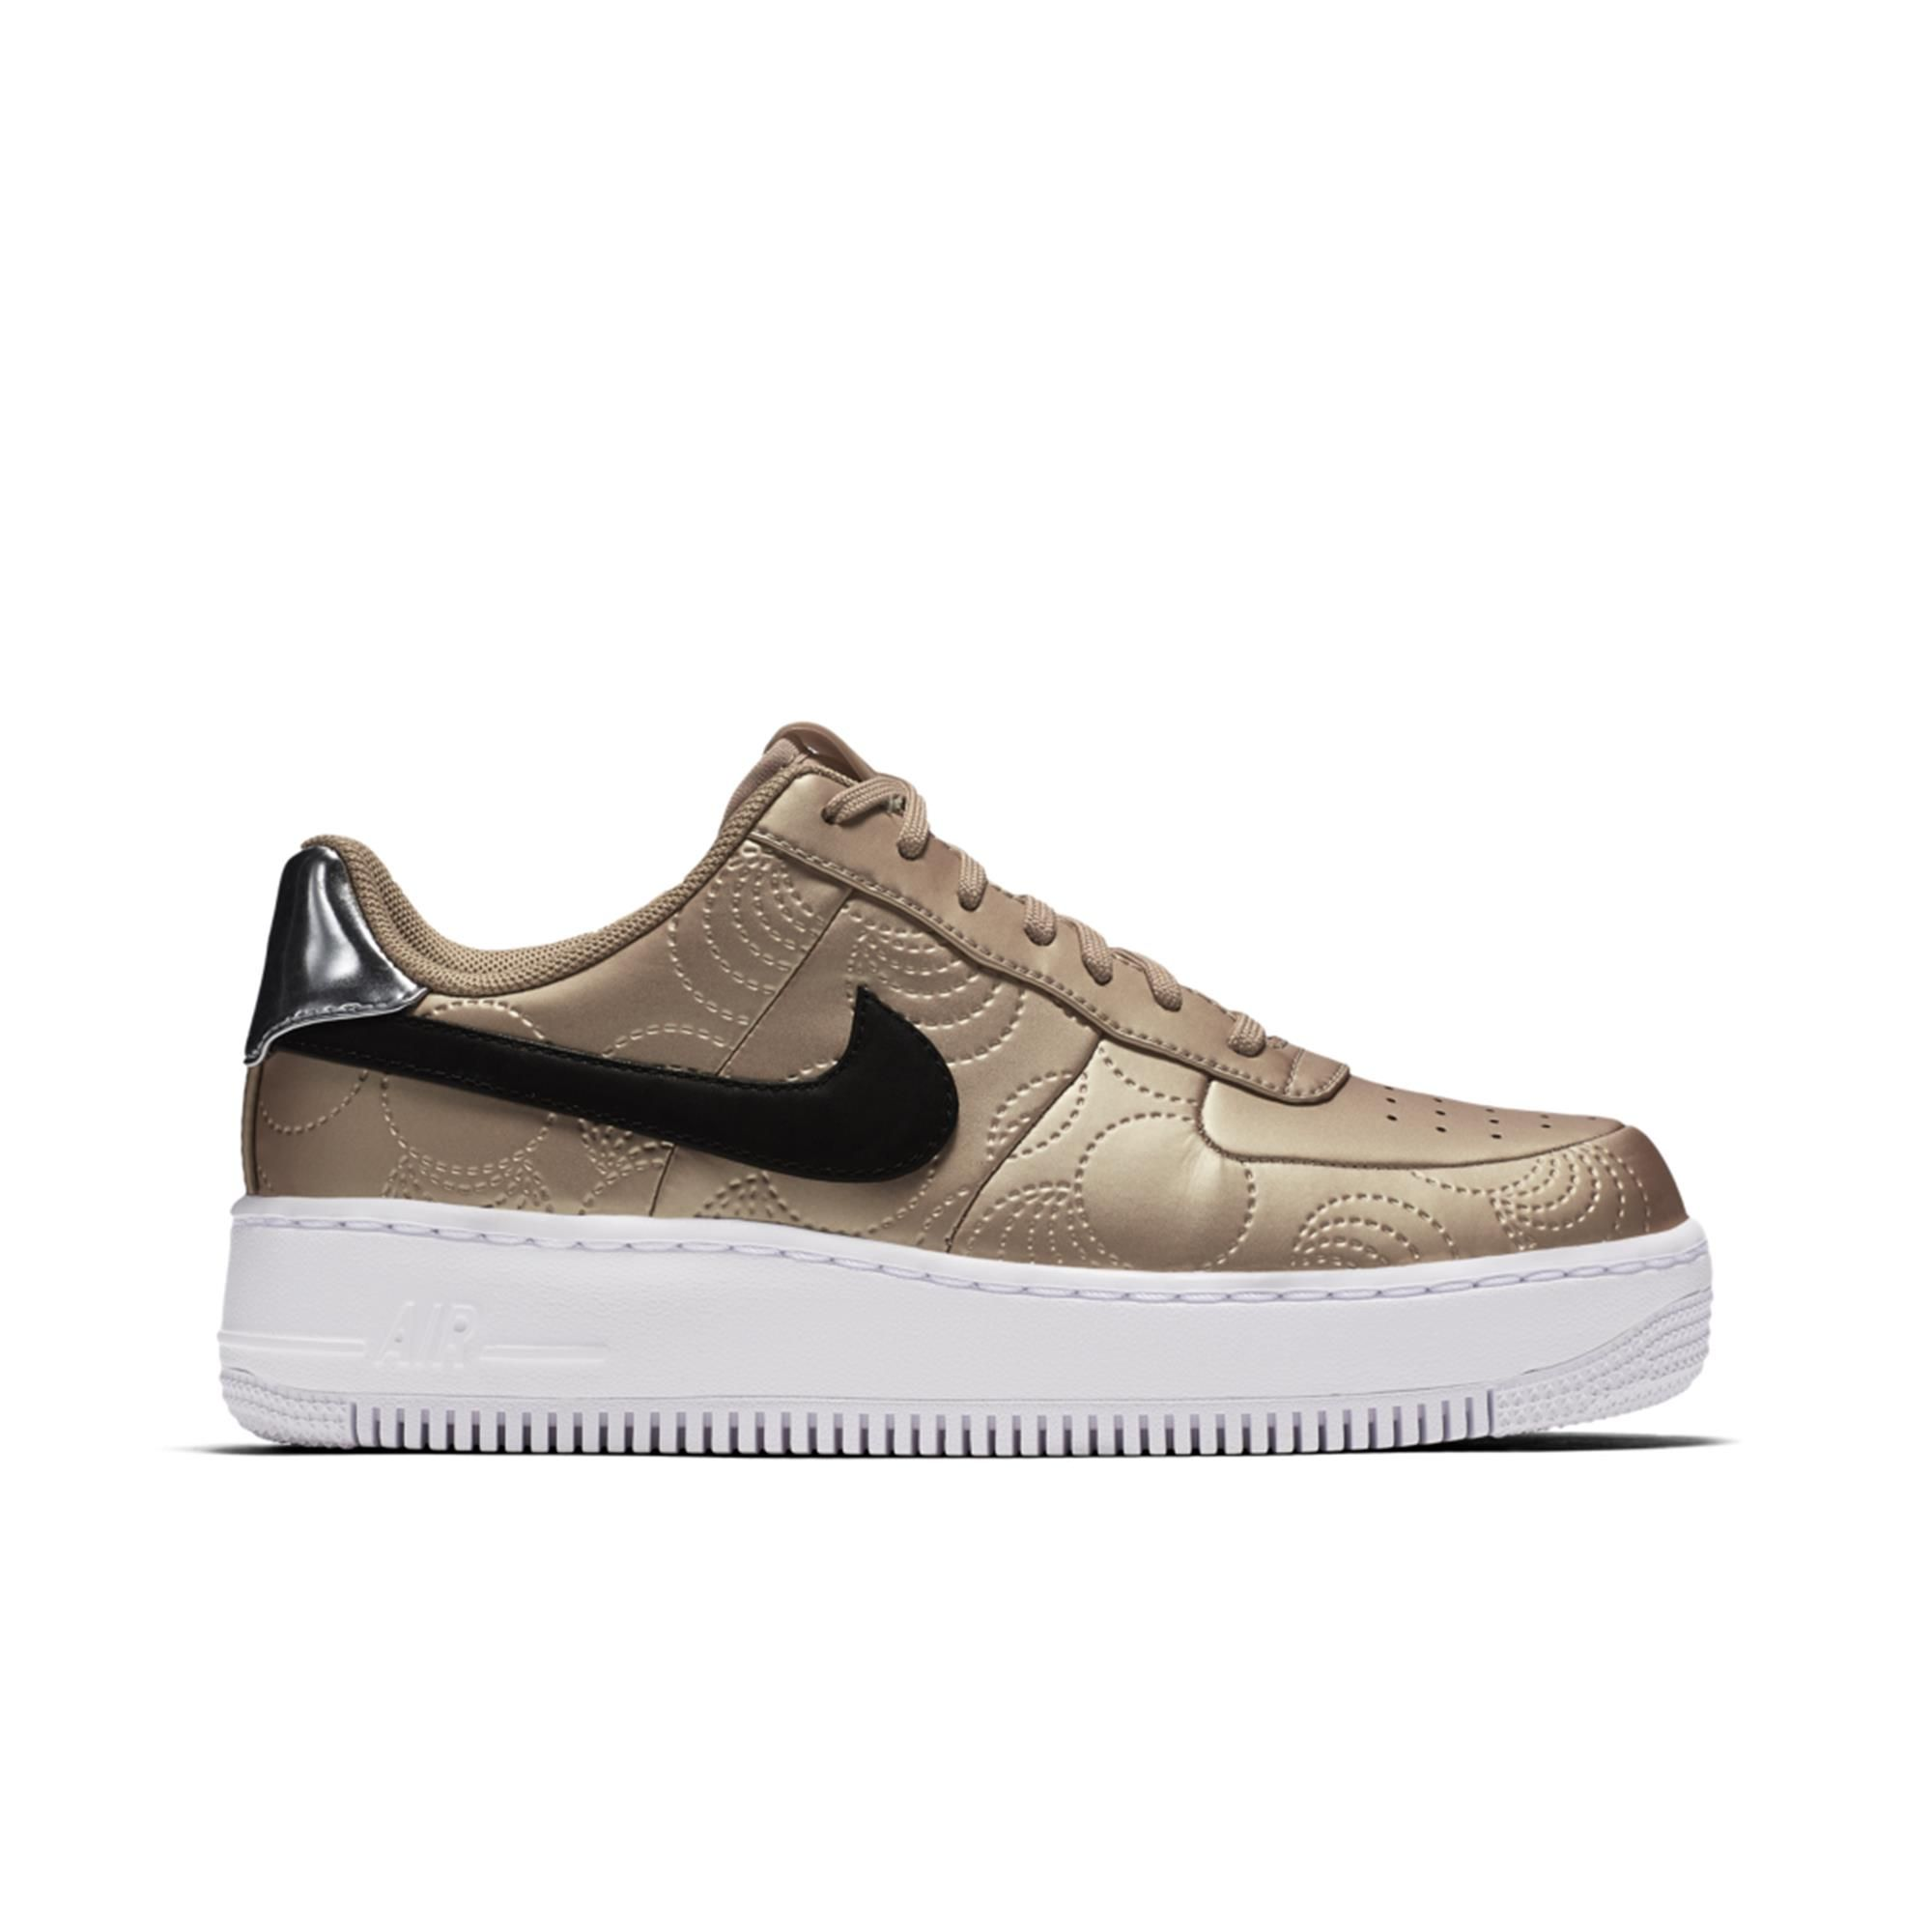 Tênis Nike Air Force 1 Upstep LOTC QS Feminino  91dd3313eb297